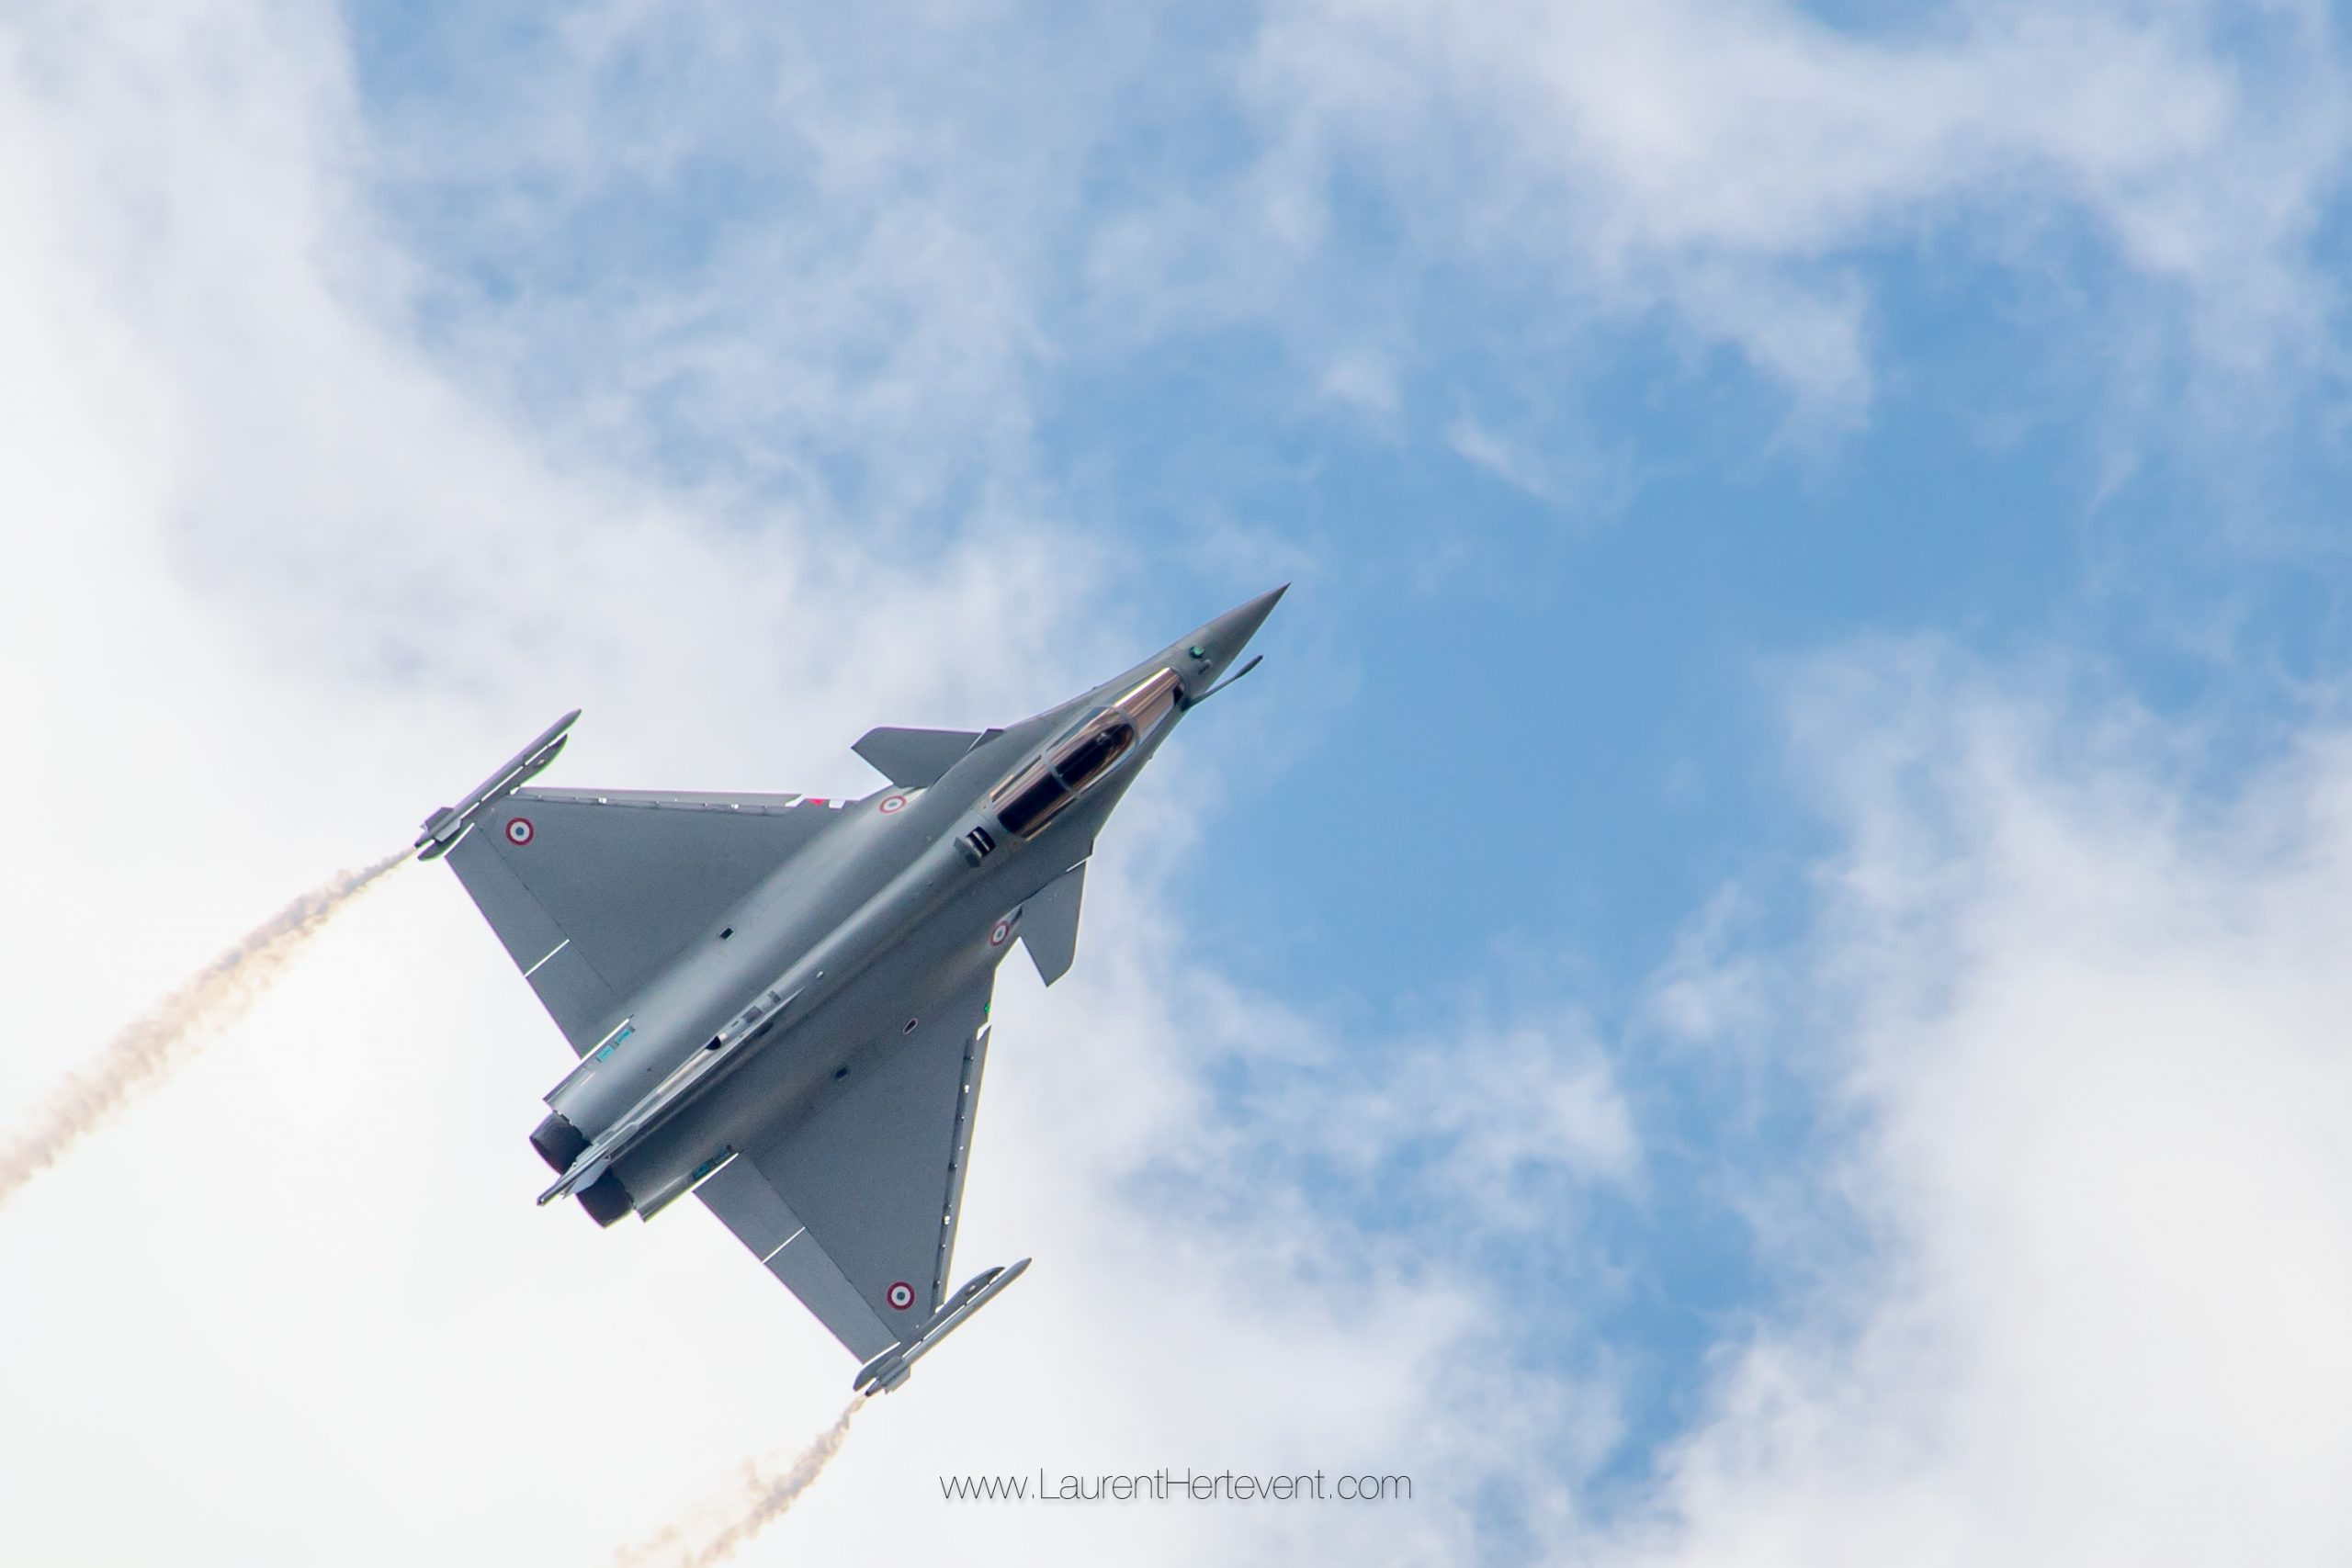 300_2015_0619_PARIS_AIR_SHOW_130658